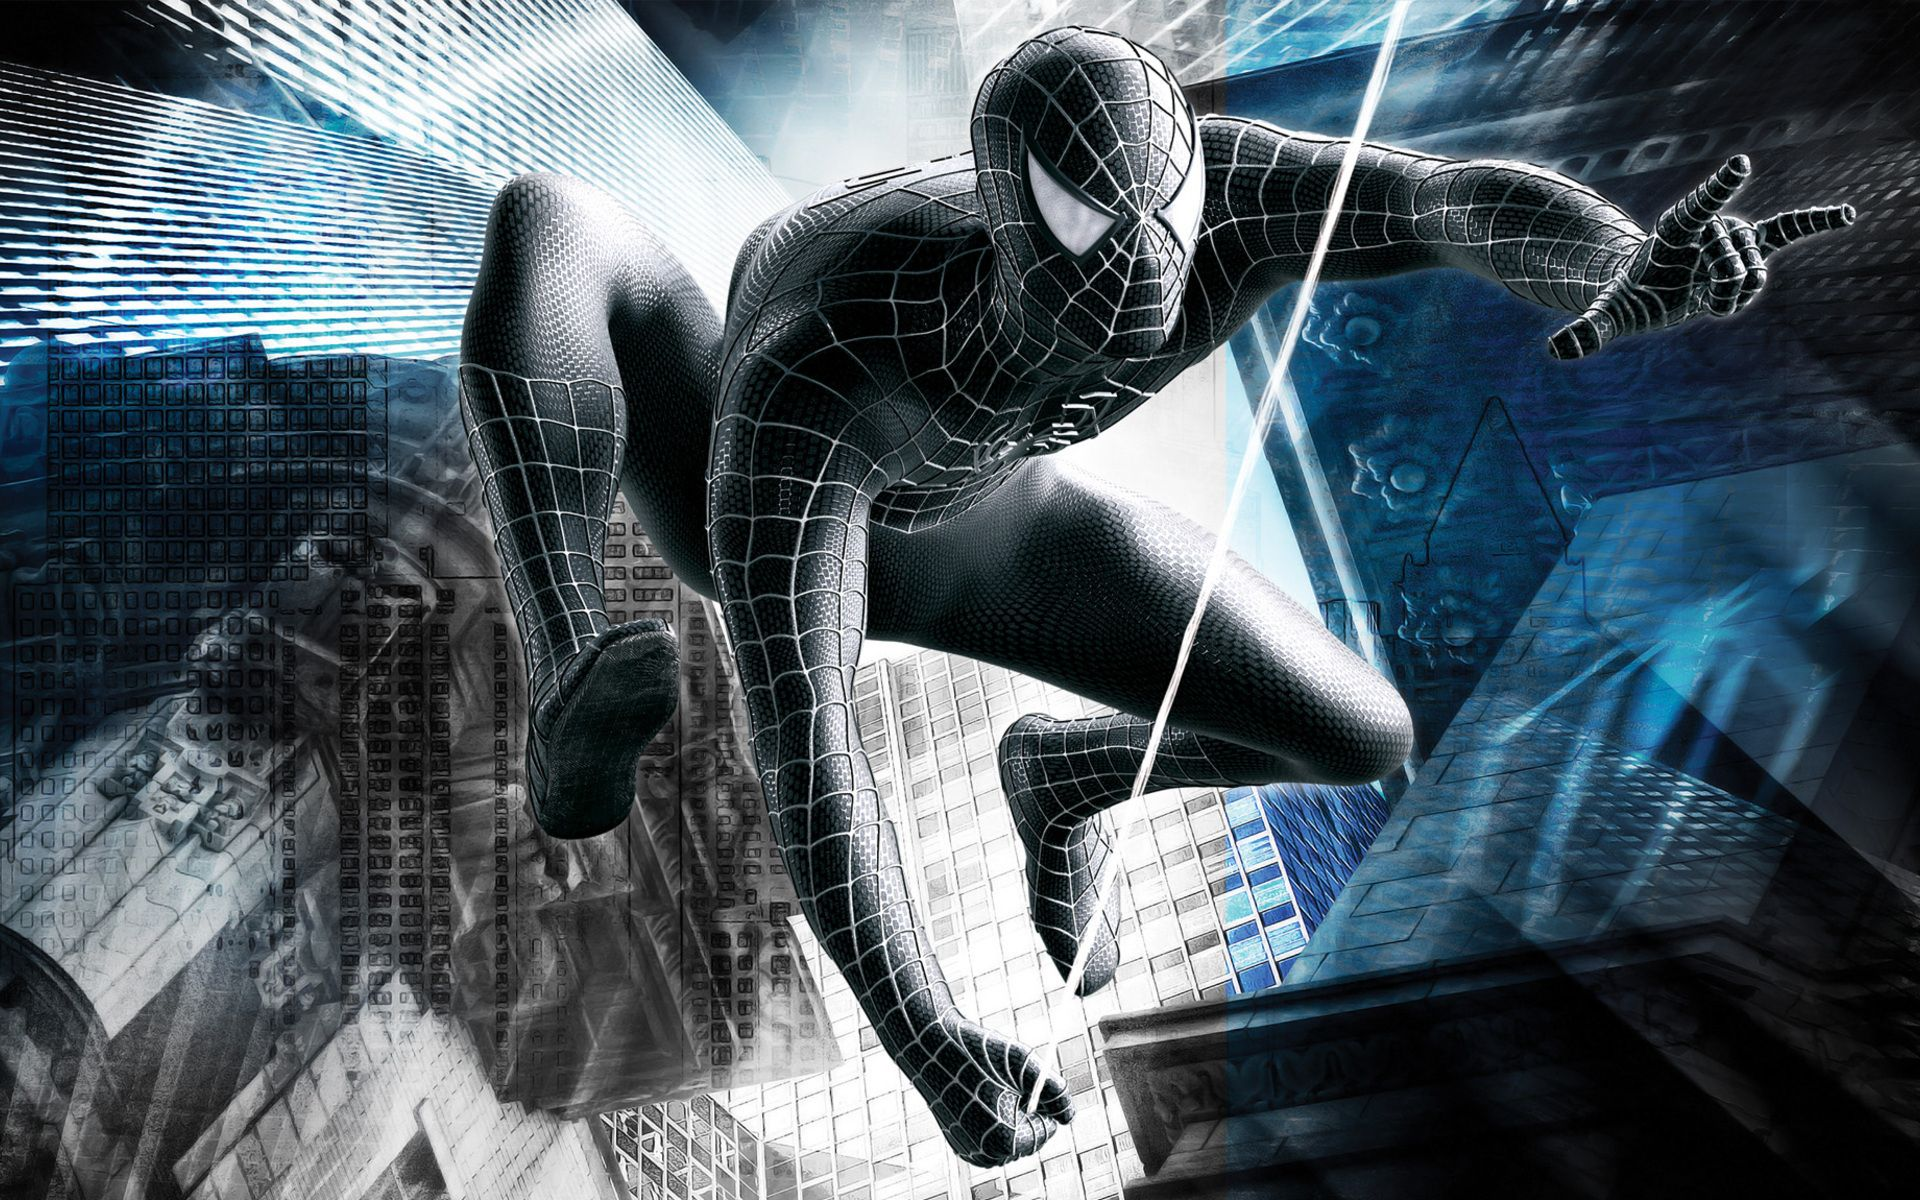 Spider Man 3 Hd Wallpapers Hd Wallpapers Id 1564 In 2020 Spiderman Pictures Black Spiderman Man Wallpaper